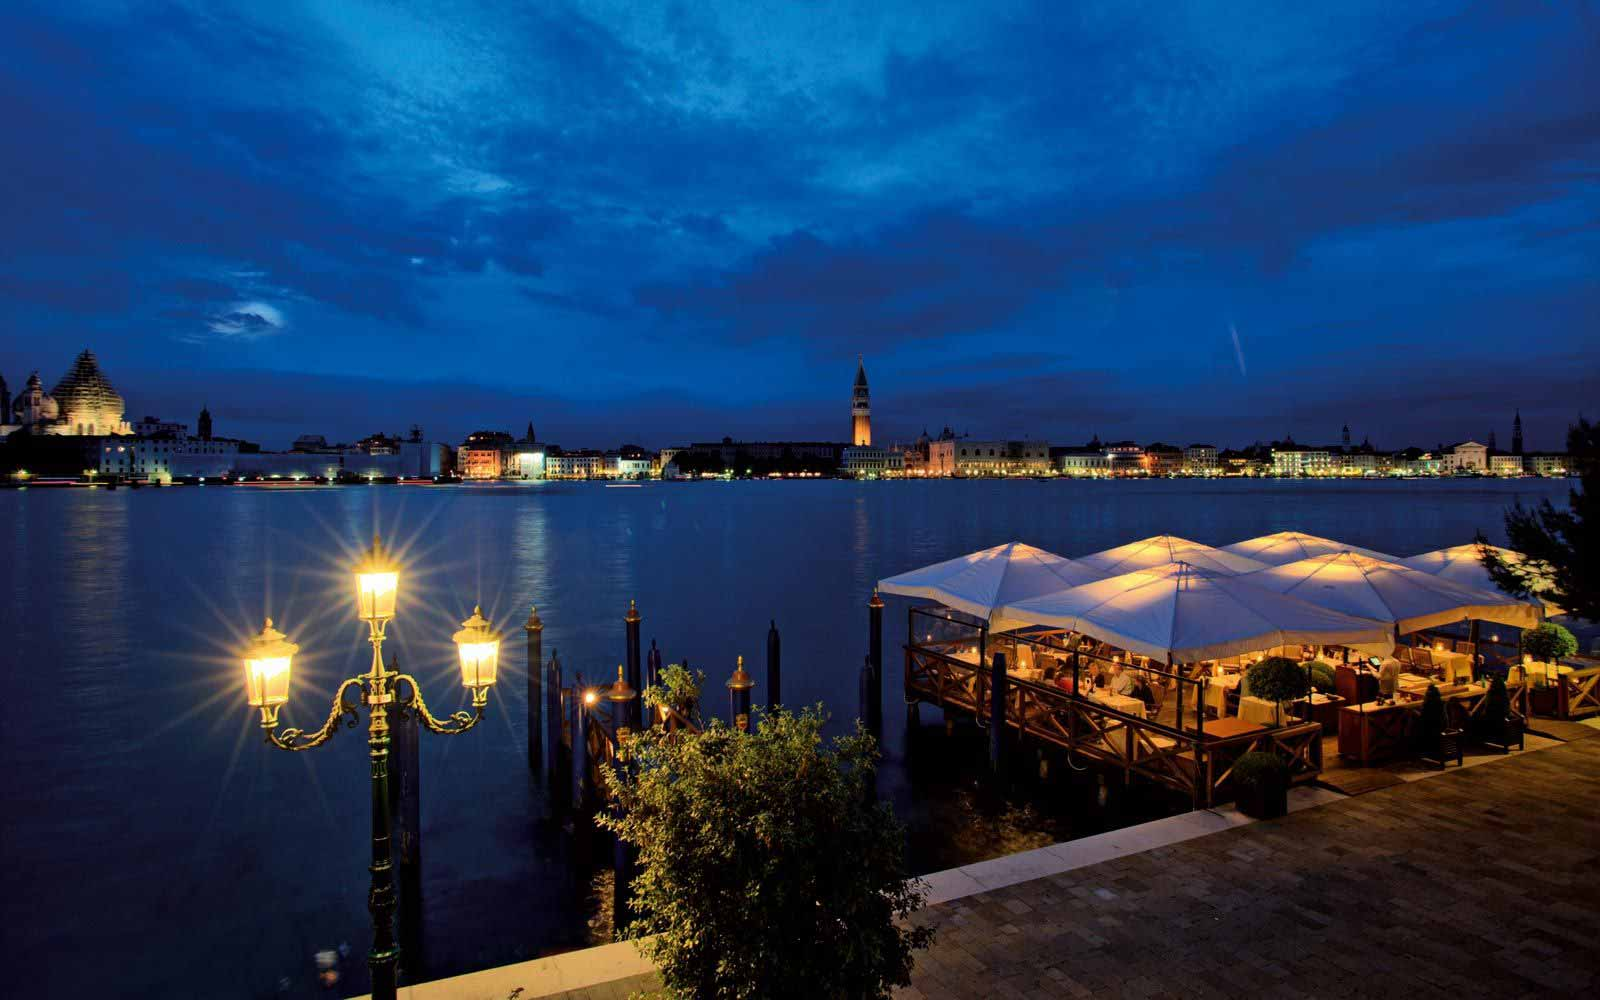 Restaurant by the river at Belmond Hotel Cipriani